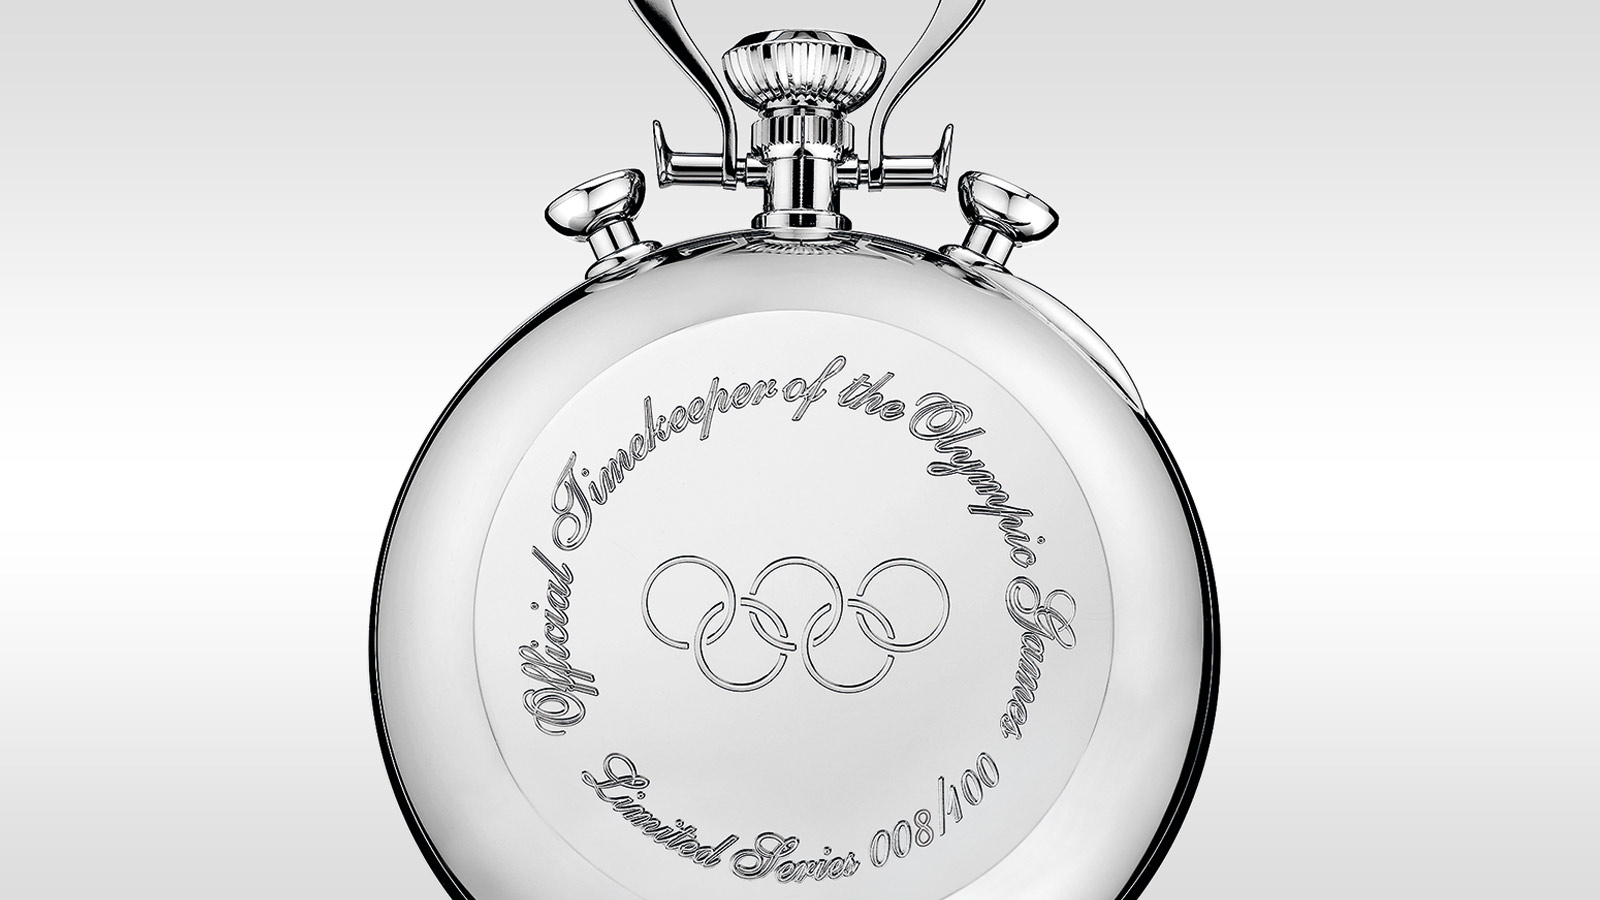 Specialities OLYMPIC POCKET WATCH Olympic Pocket Watch 1932 - 5110.20.00 - View 2